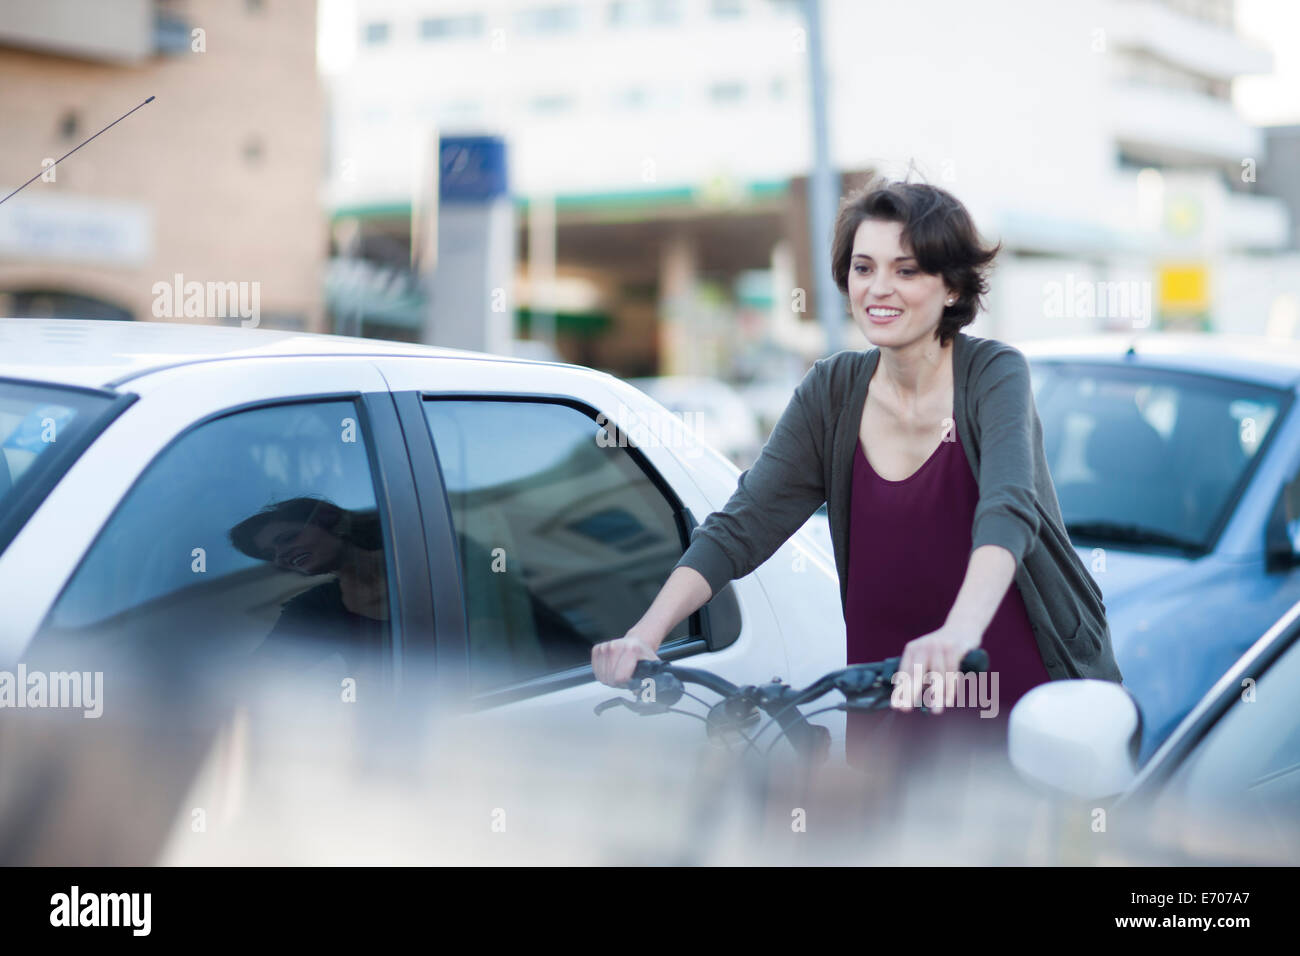 Young female cyclist commuting through city traffic jam - Stock Image